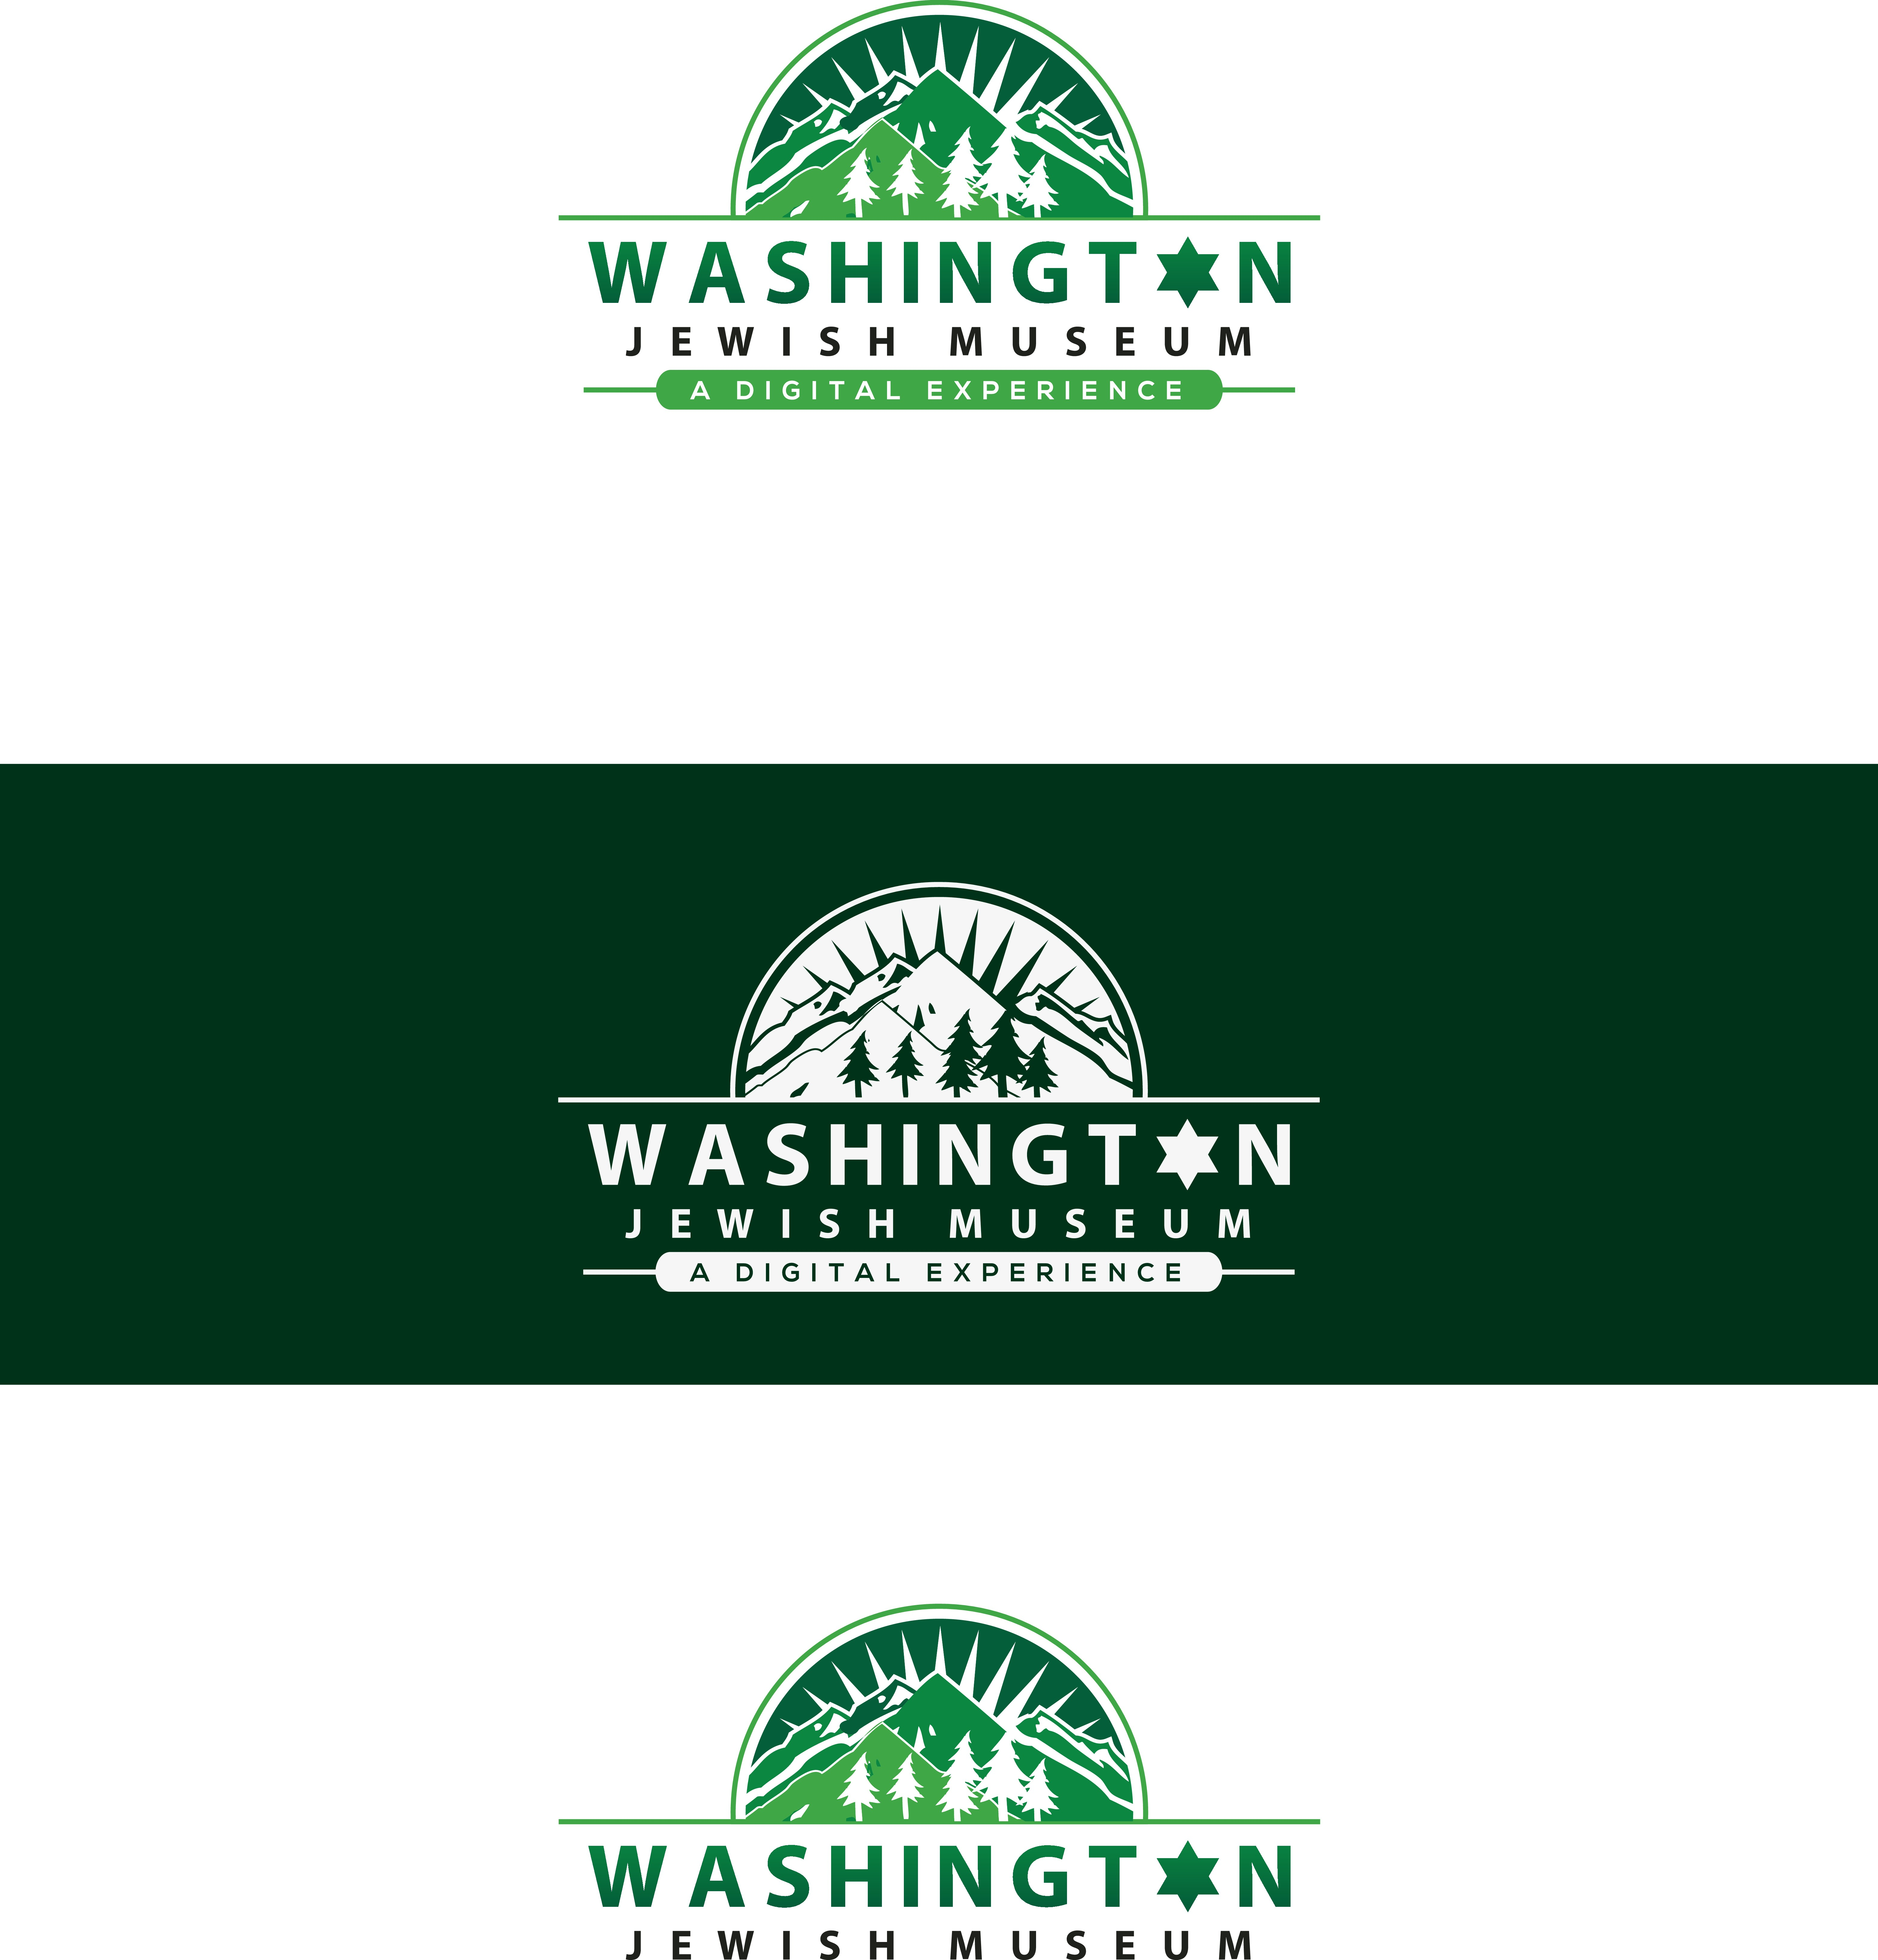 Create a modern logo for the new Washington Jewish Museum